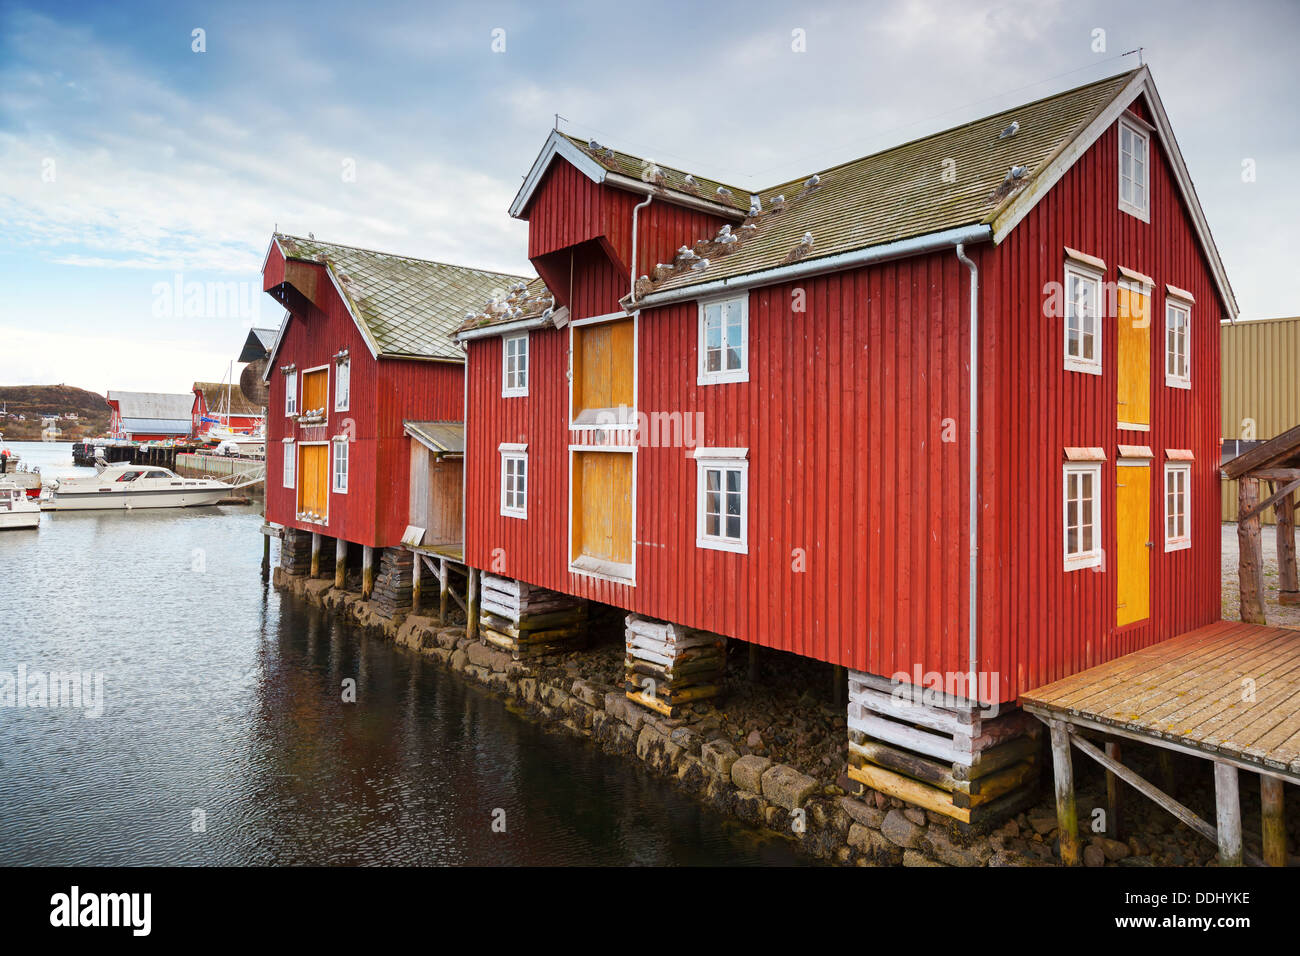 red and yellow wooden coastal houses in norwegian fishing village